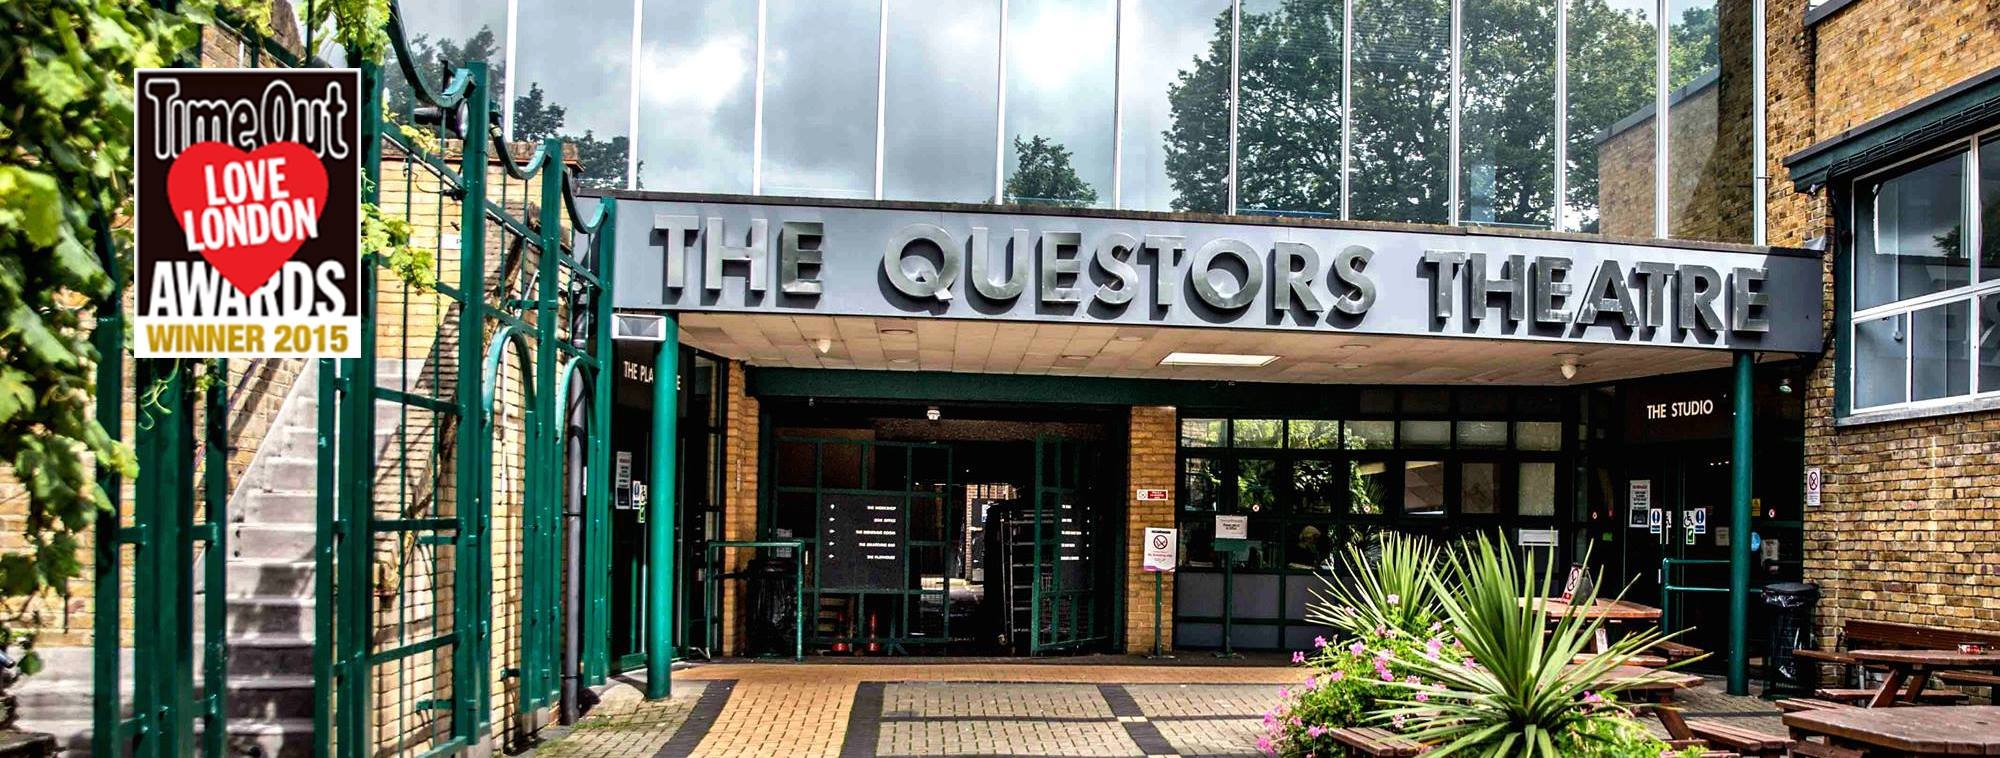 ‪The Questors Theatre‬